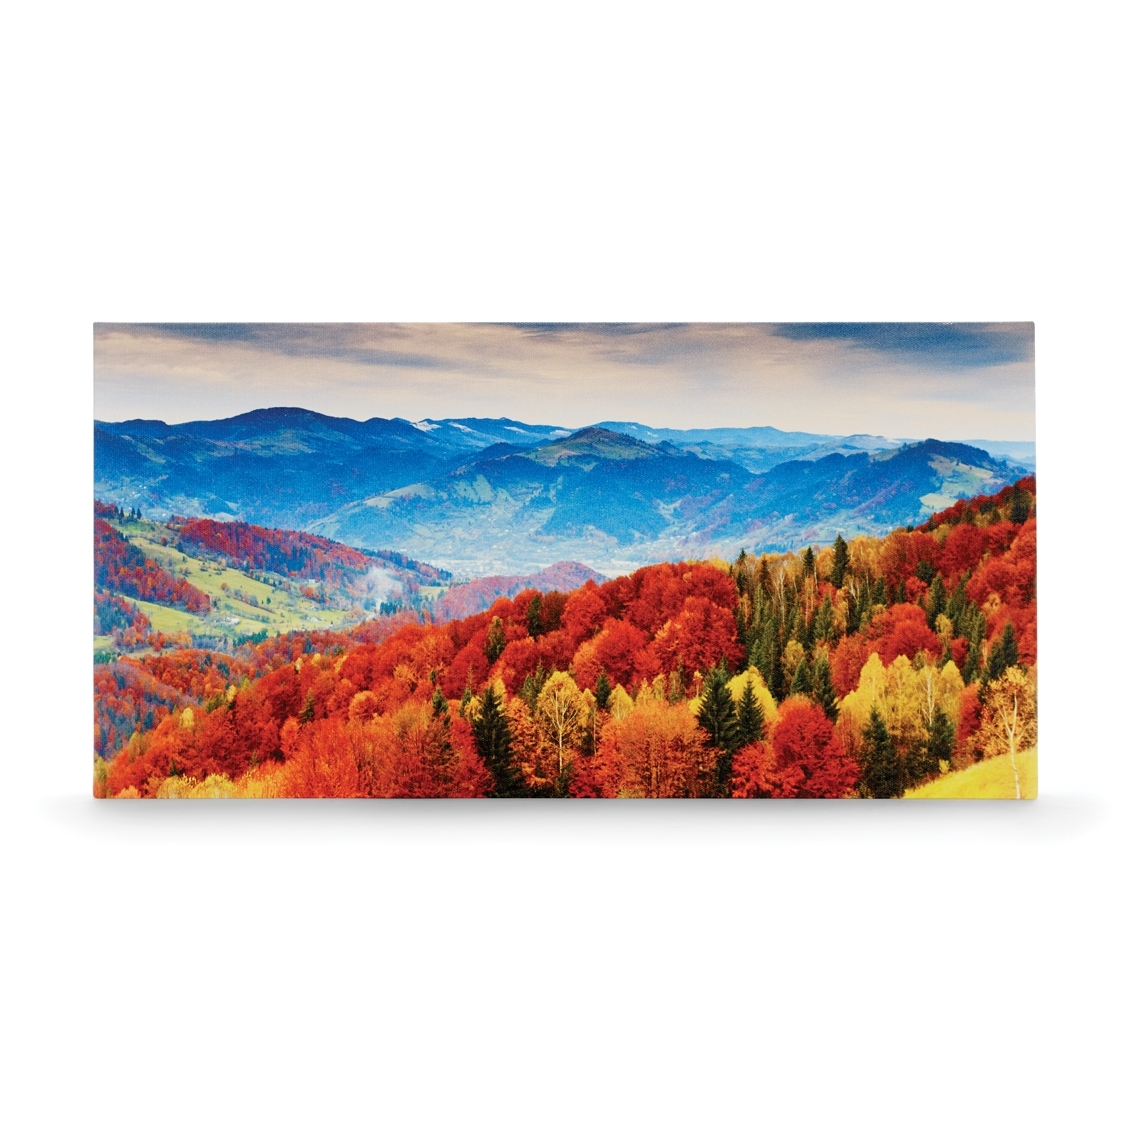 Framed Panoramic Canvas Print, 10X20 Black | Panoramic Canvas With Regard To Most Up To Date Panoramic Canvas Wall Art (Gallery 9 of 15)